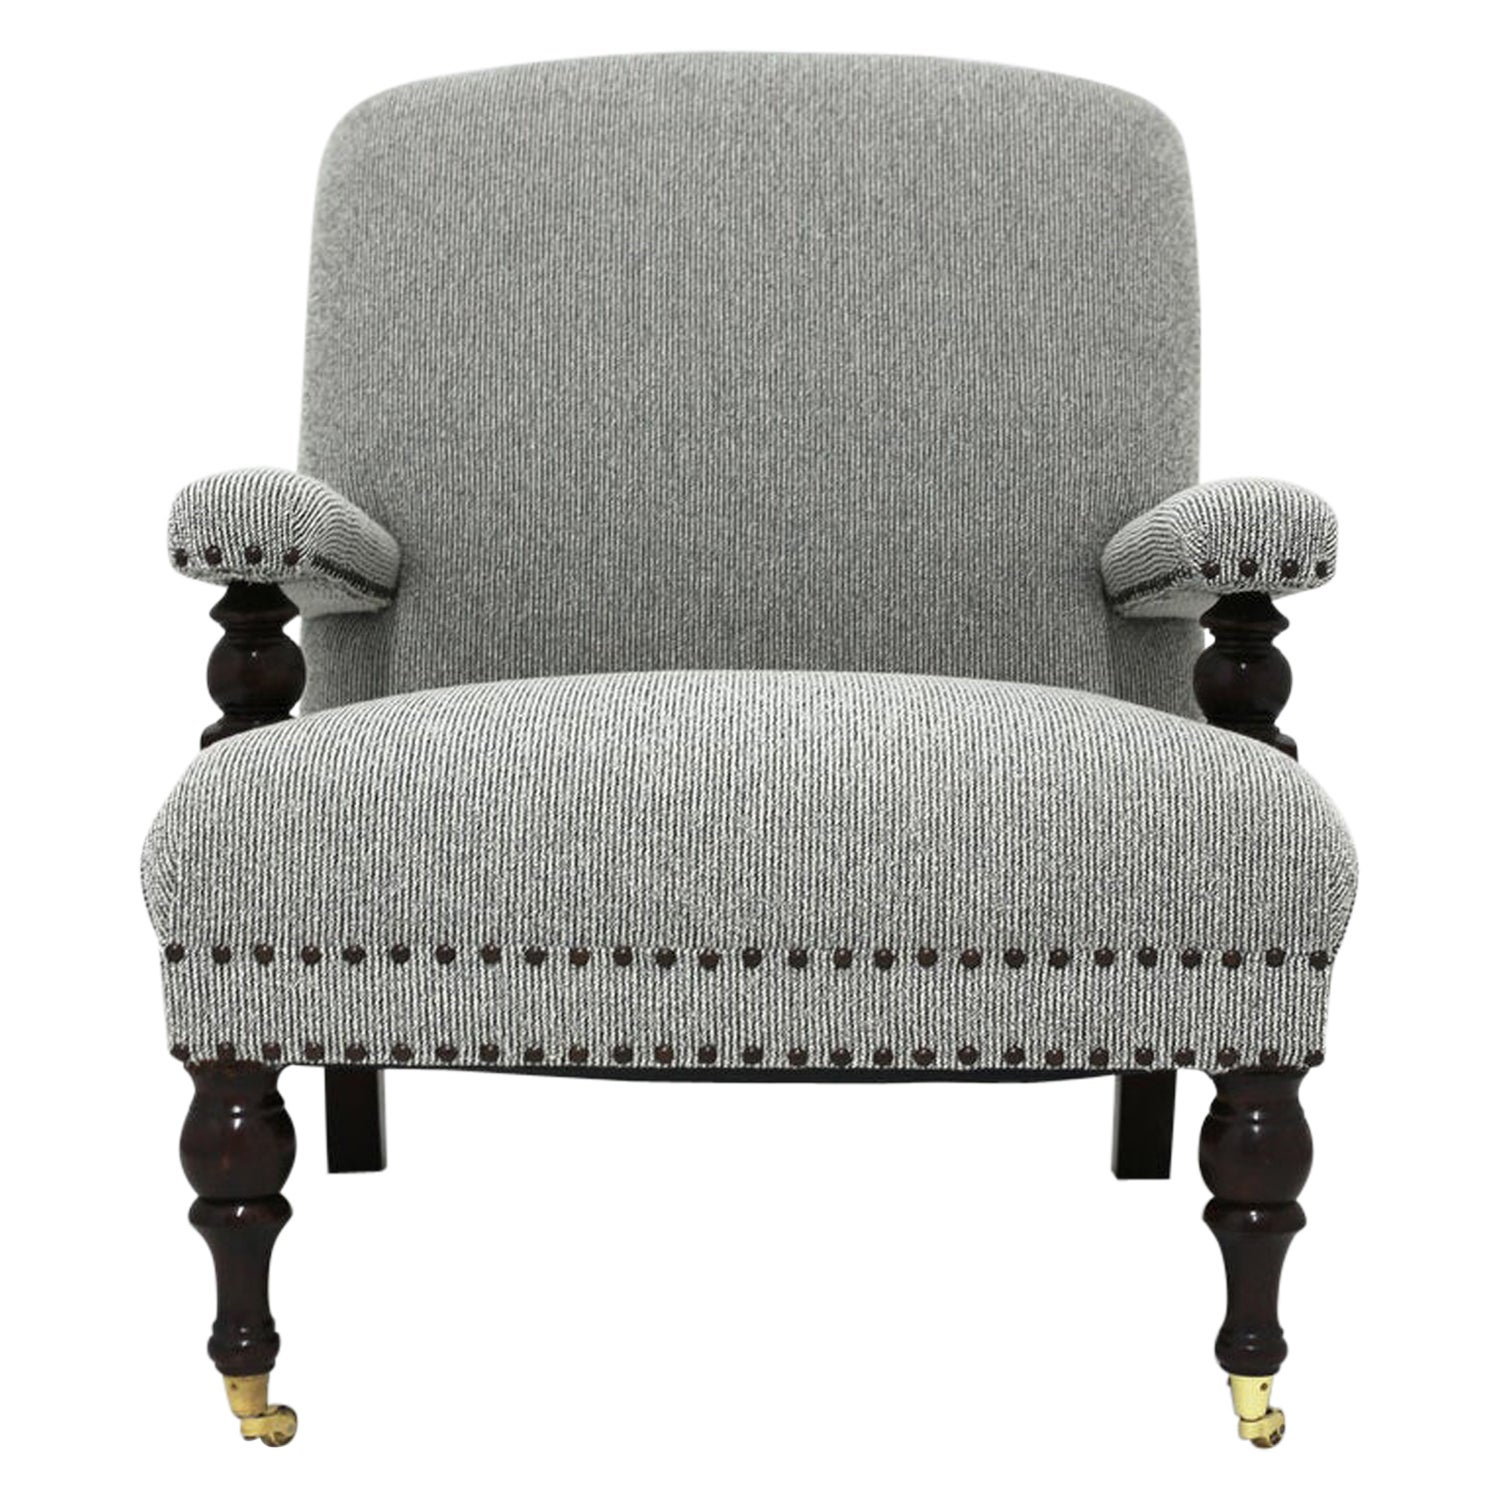 Upholstered Club Chair Shown in Tweed Fabric with Nailhead Trim and Carved